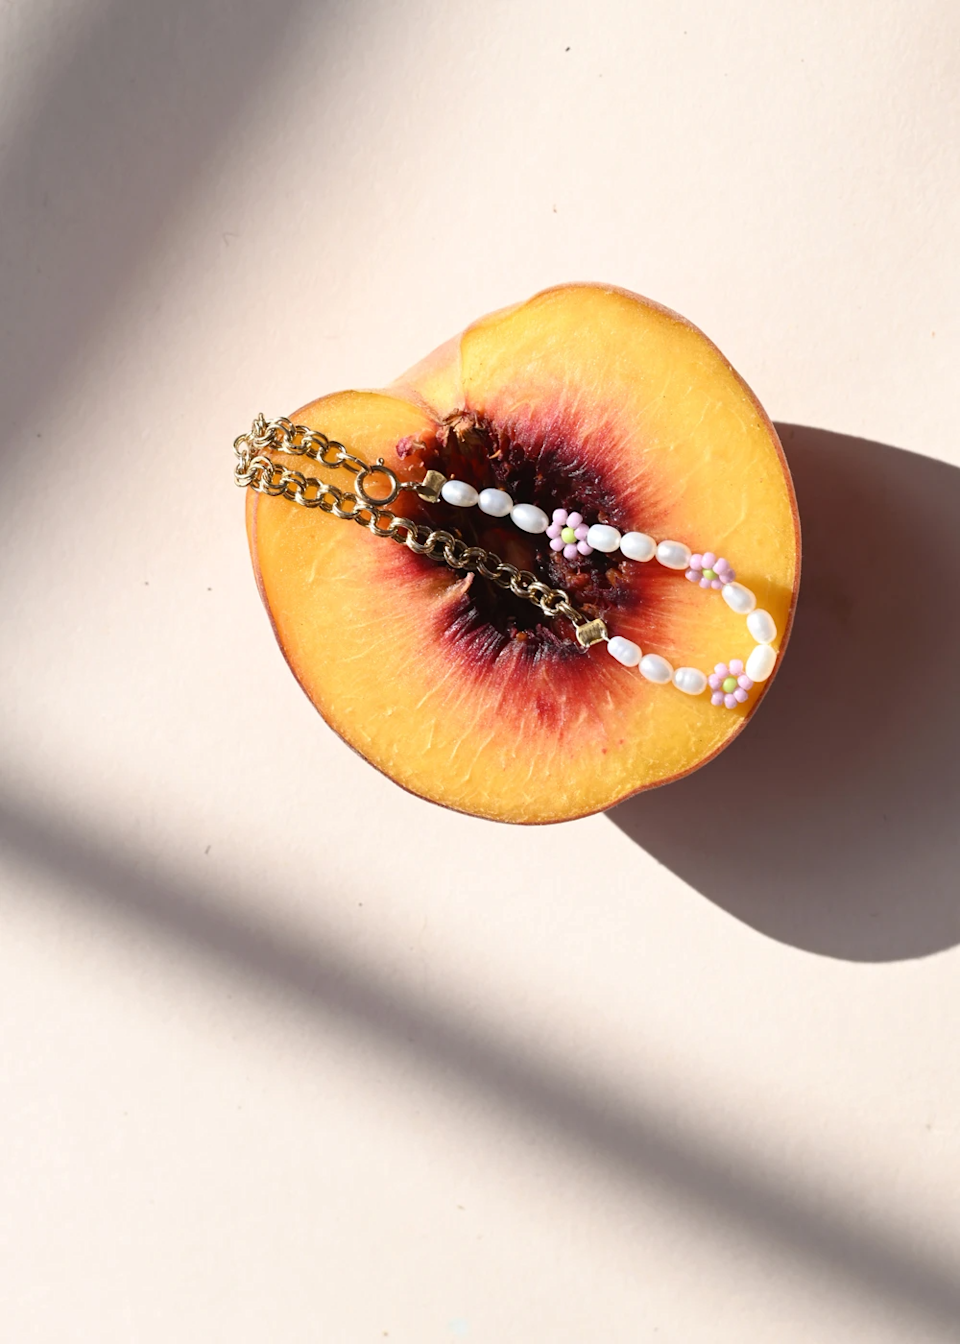 """<h3>Hilsen Heloise Bracelet</h3><br>Cara Cara is a go-to online retailer for the sweetest deals on the best brands. Browse their site to find scores on home and wardrobe items from the likes of Hay to Karen Walker and much more. <br><br><strong>Hilsen</strong> Heloise Bracelet, $, available at <a href=""""https://go.skimresources.com?id=30283X879131&xs=1&url=https%3A%2F%2Fcaracara.la%2Fcollections%2Fgifts-under-50%2Fproducts%2Fheloise-bracelet"""" rel=""""nofollow noopener"""" target=""""_blank"""" data-ylk=""""slk:Cara Cara"""" class=""""link rapid-noclick-resp"""">Cara Cara</a>"""